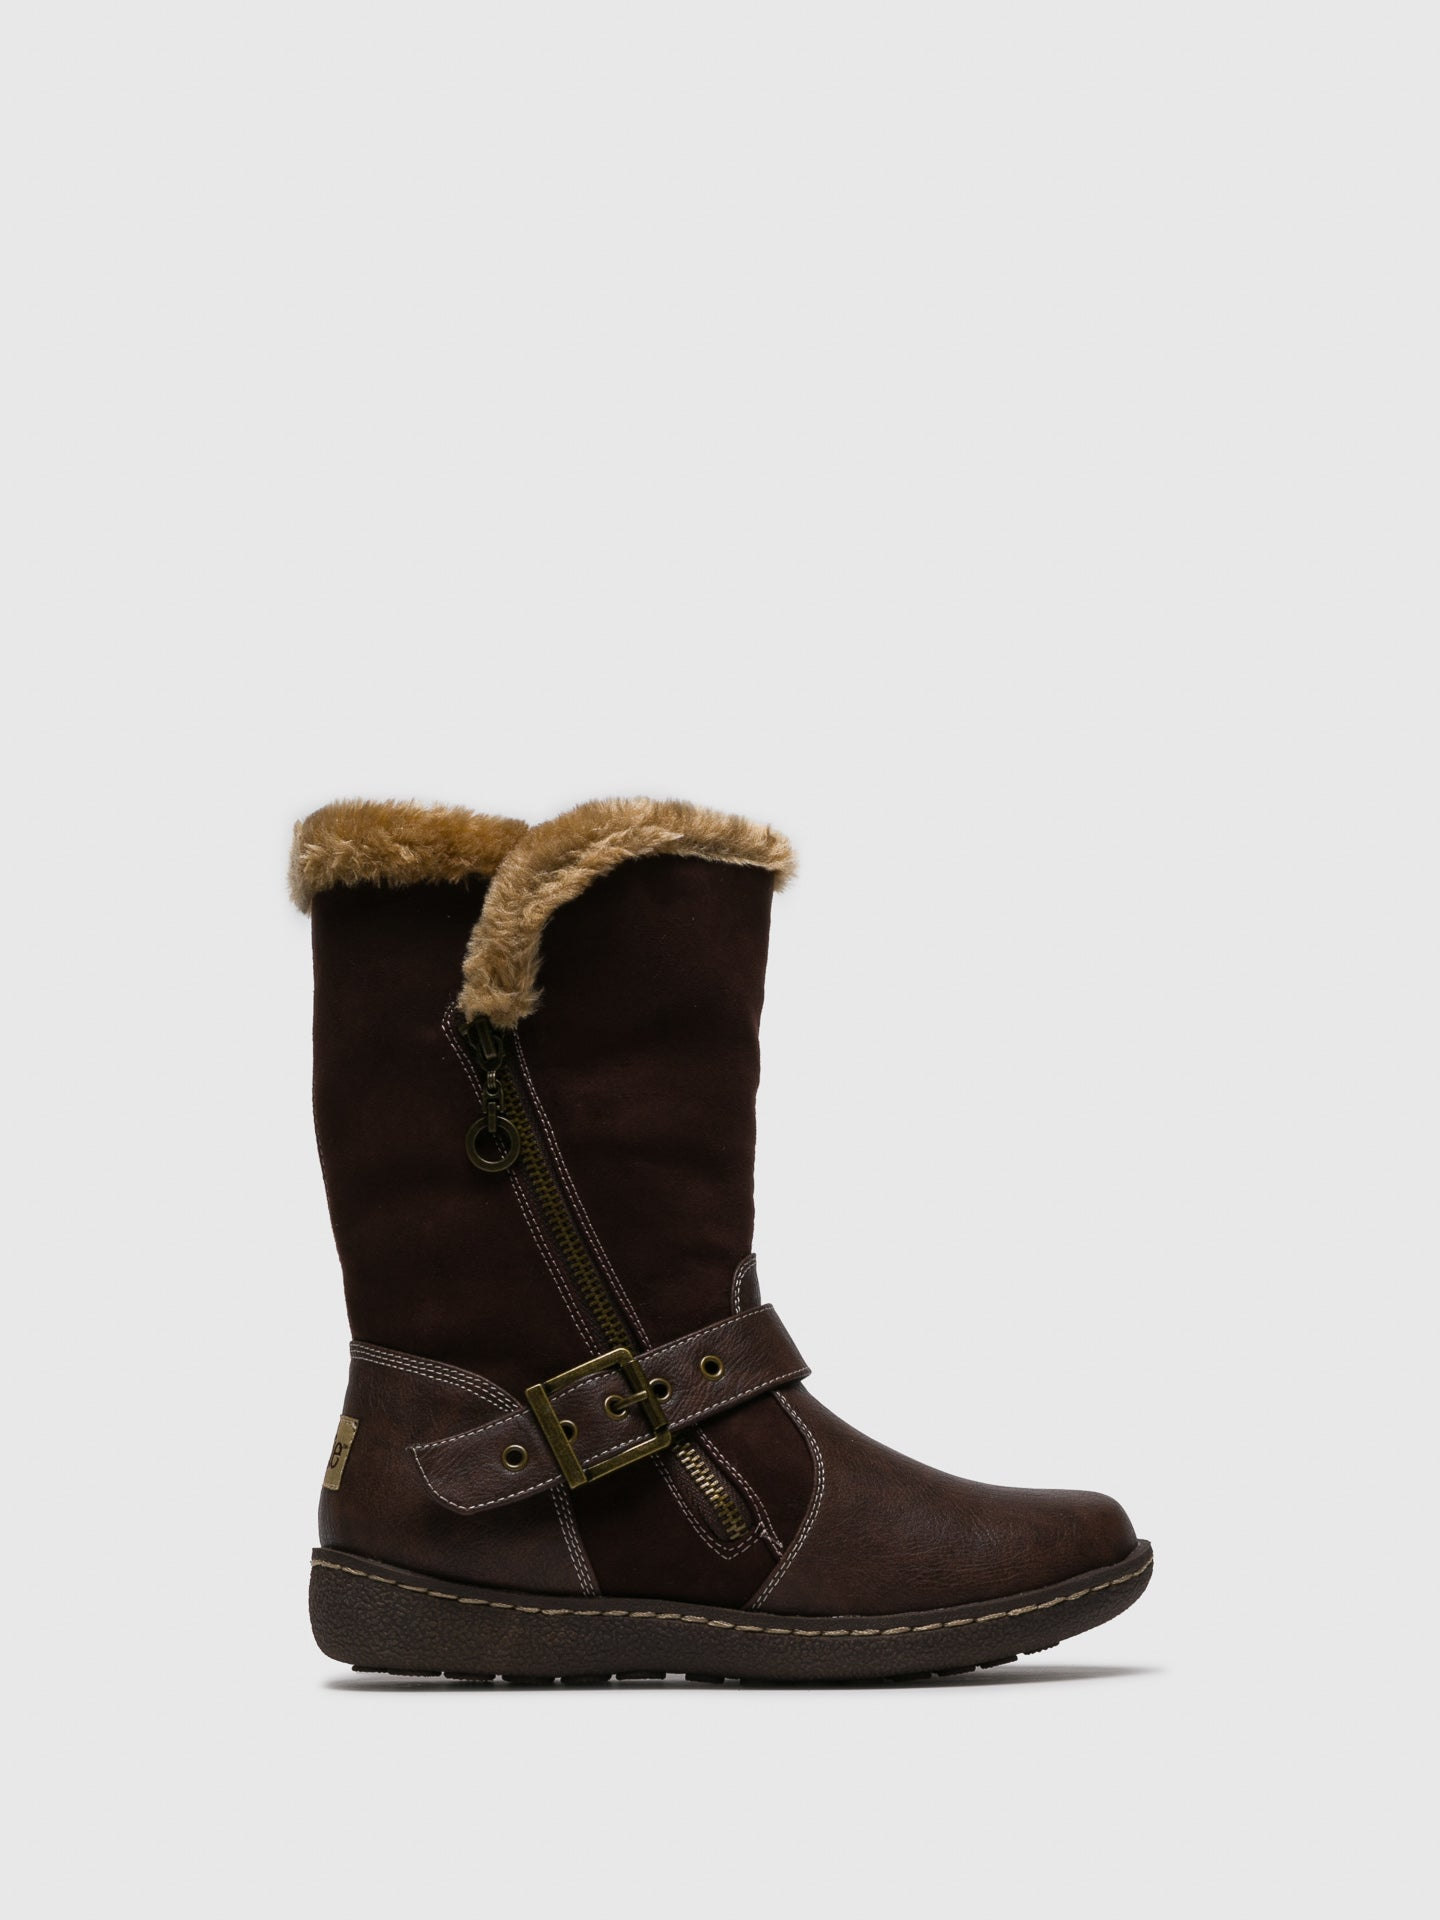 PIXIE Brown Zip Up Boots